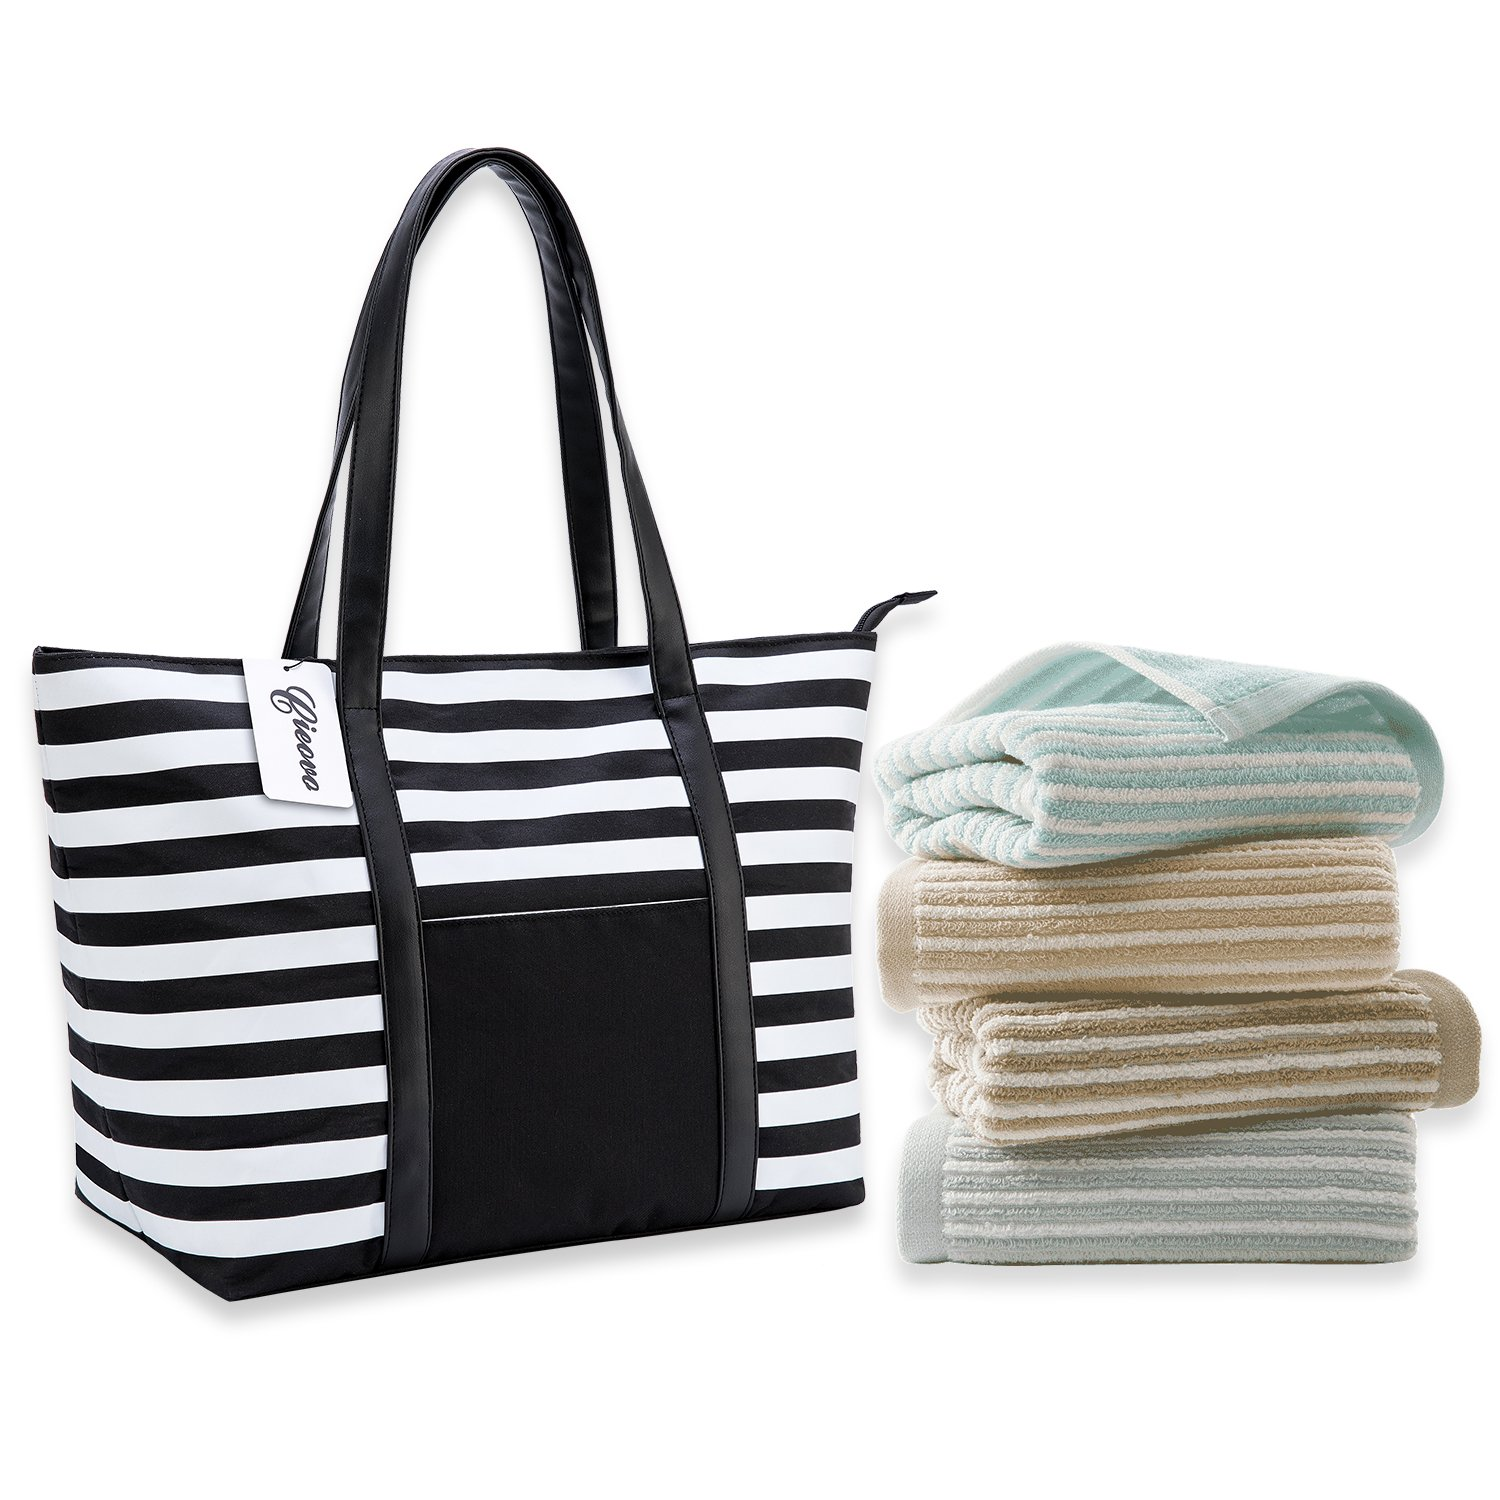 Cieovo Large Beach Bag For Women Waterproof Oxford Tote Bags With Leather Handle (Black-White Stripe, Large)